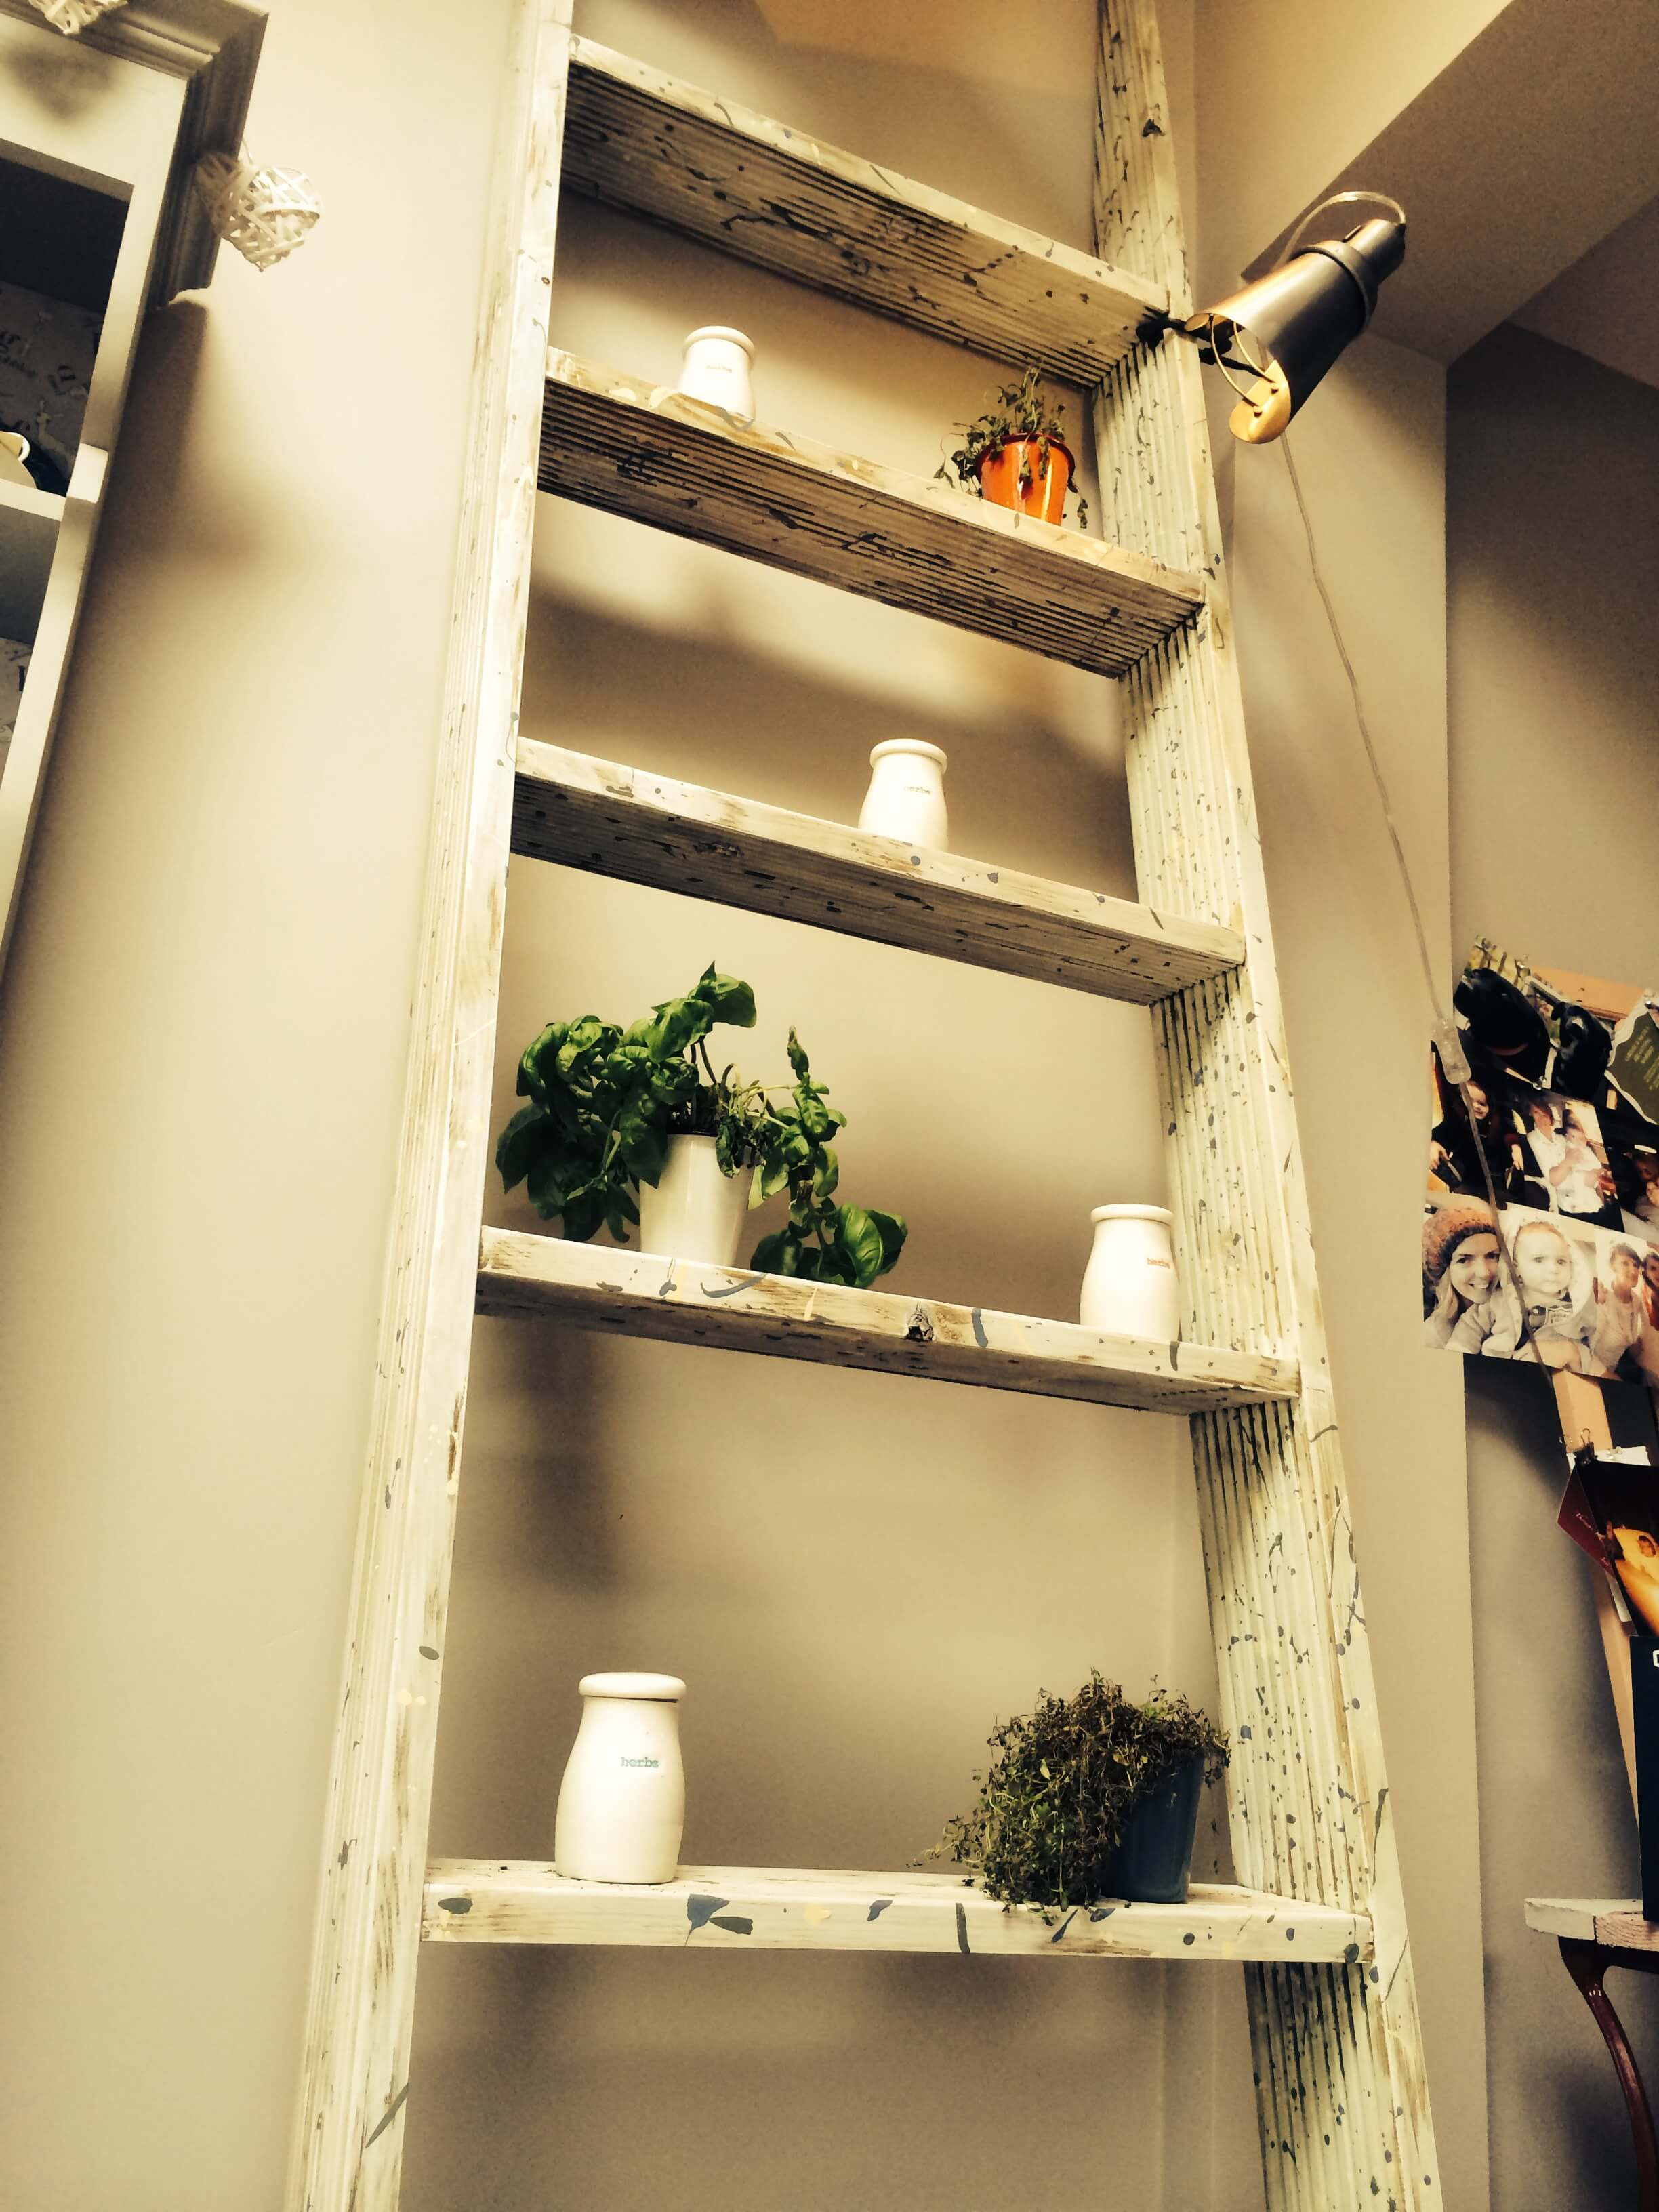 Another straight on view of the shelving with added accents.